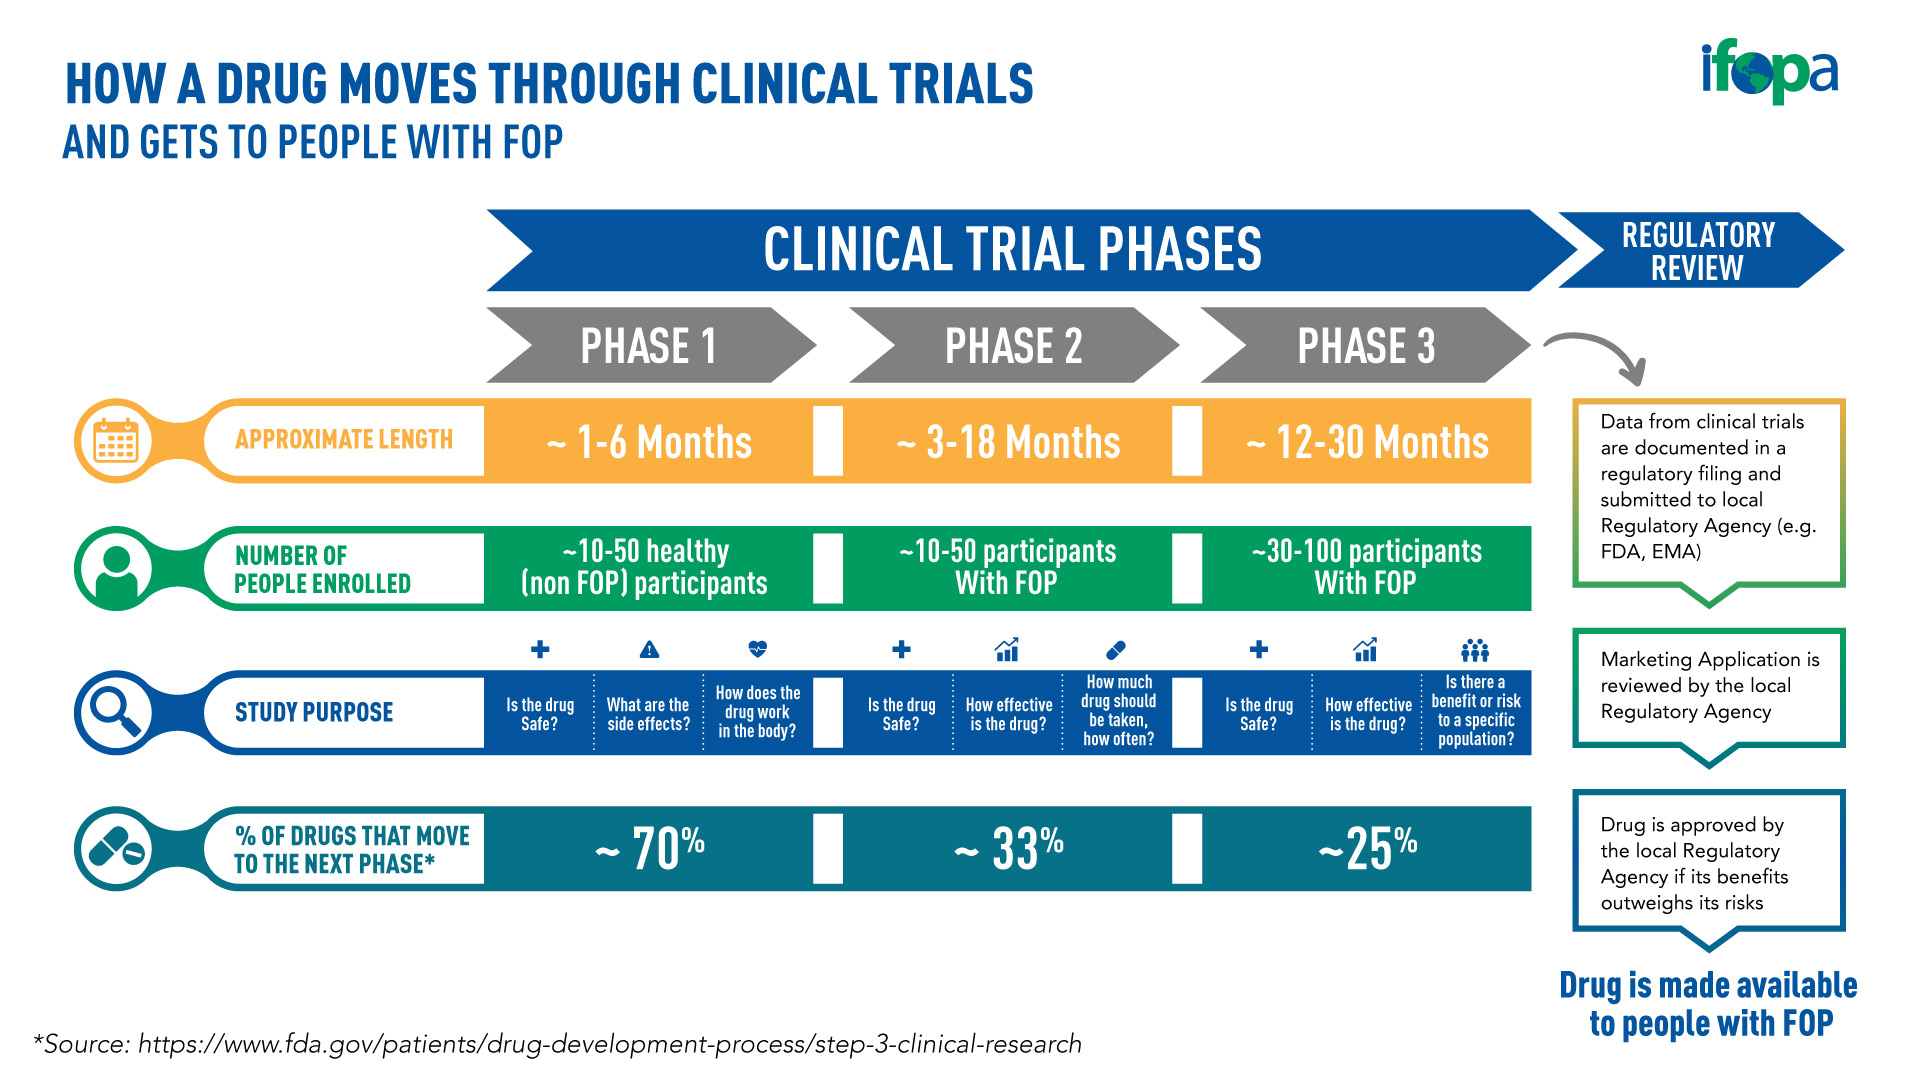 A visual overview of how a drug moves through clinical trials